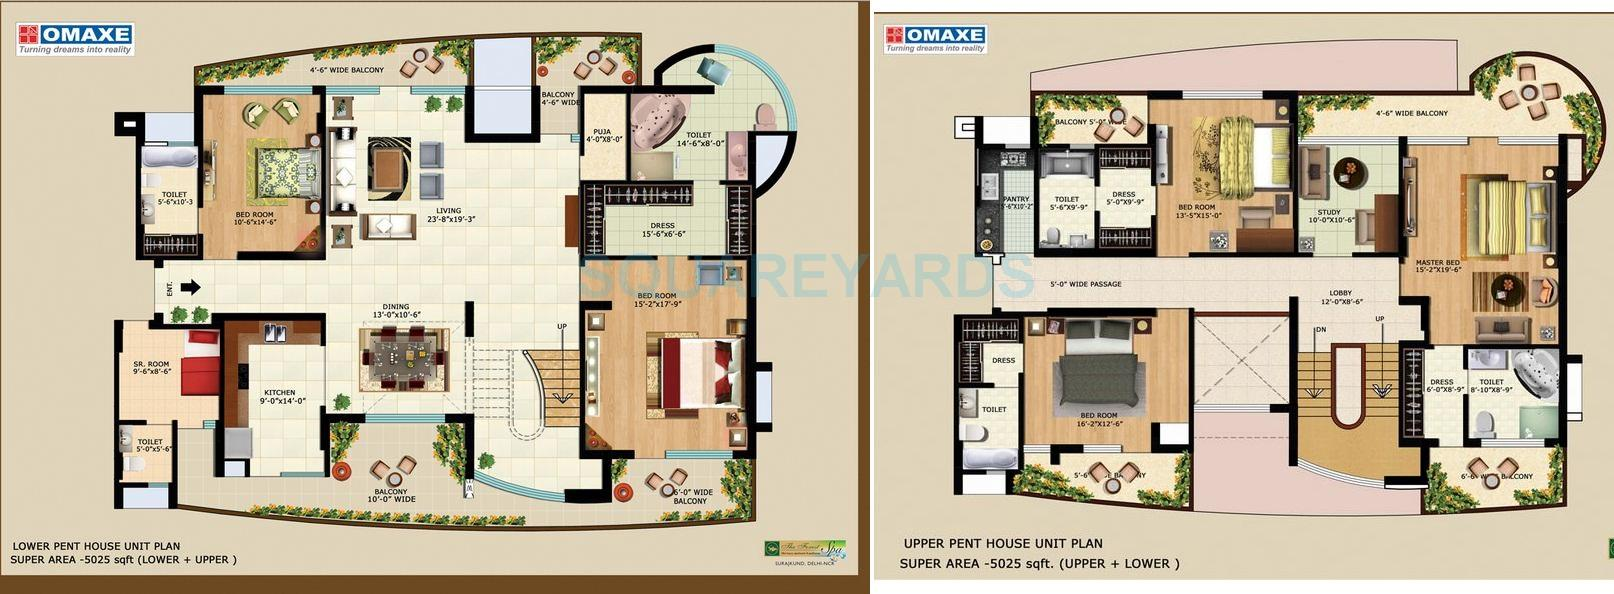 omaxe the forest spa penthouse 5bhk sq 5025sqft 1